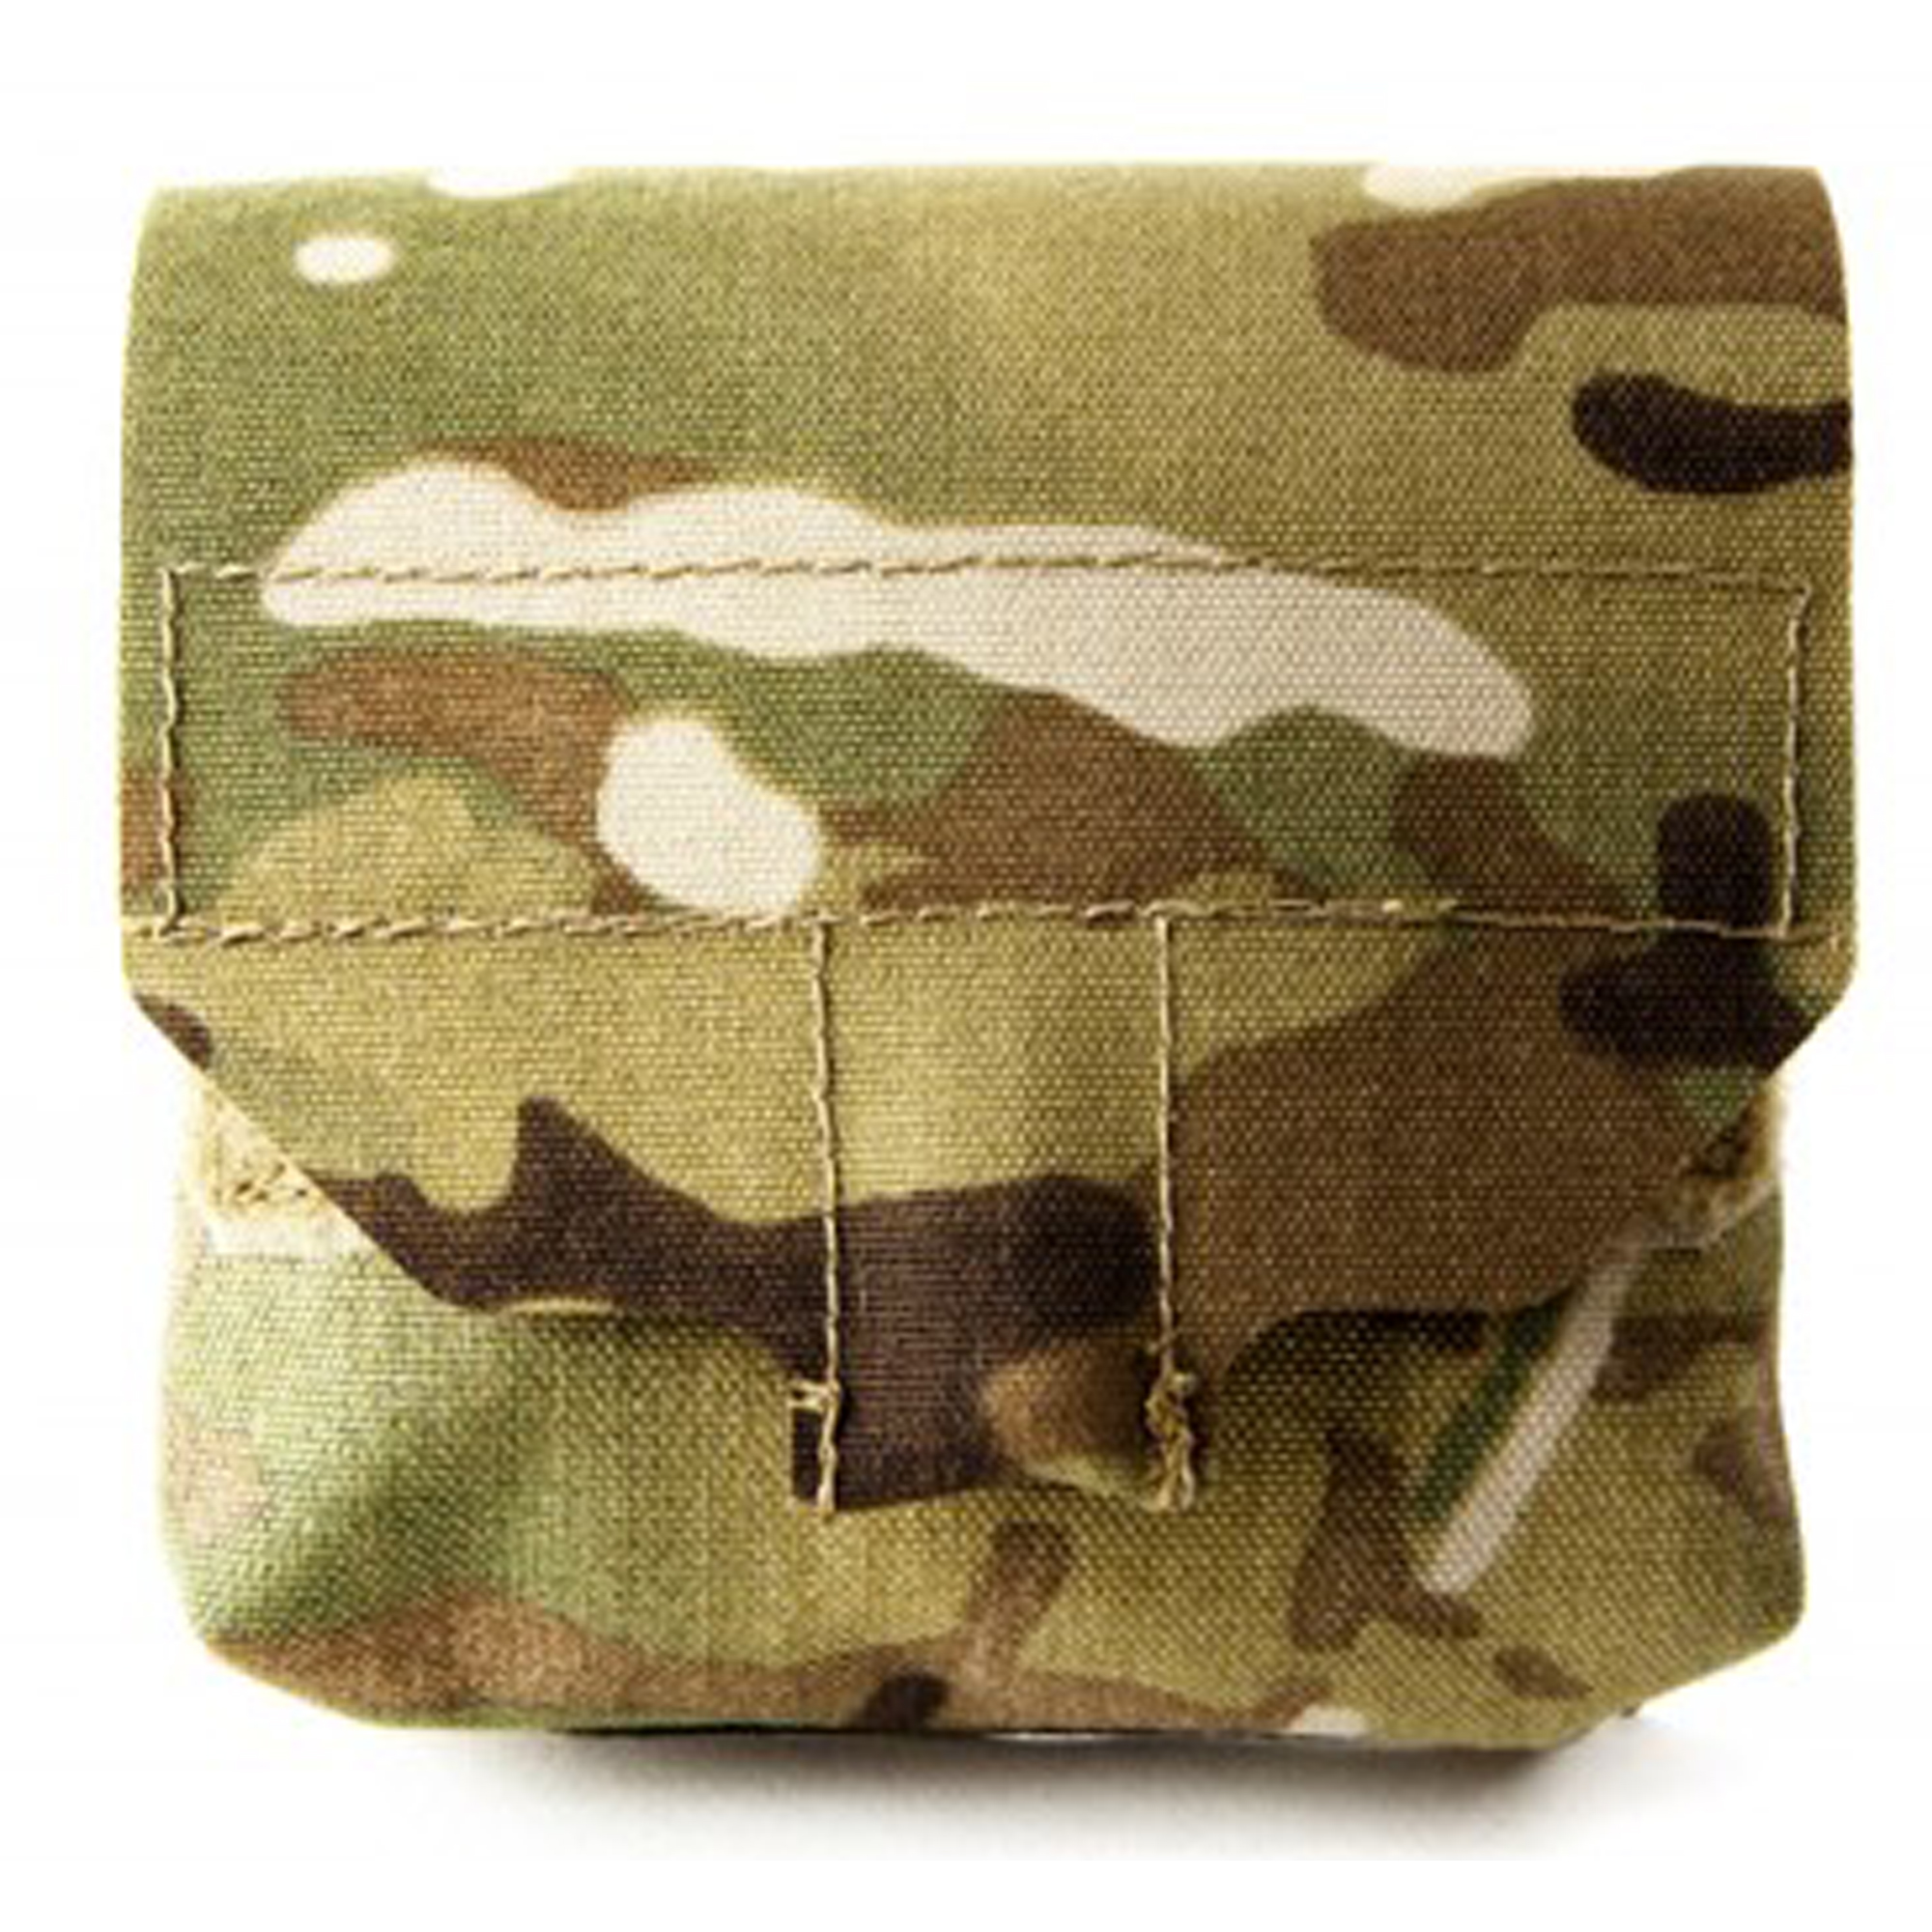 """As its name implies"""" the Boo Boo(R) Pouch was designed to hold non-essential essentials like a phone"""" chap-stick"""" snivel kit"""" earplugs"""" wallet or whatever smaller items may be needed. The lid is made from a single piece of ULTRAcomp(TM) laminate for a thinner"""" stronger"""" and more water resistant closure. The Boo Boo(R) Pouch has two elastic loops inside to aid in organization."""